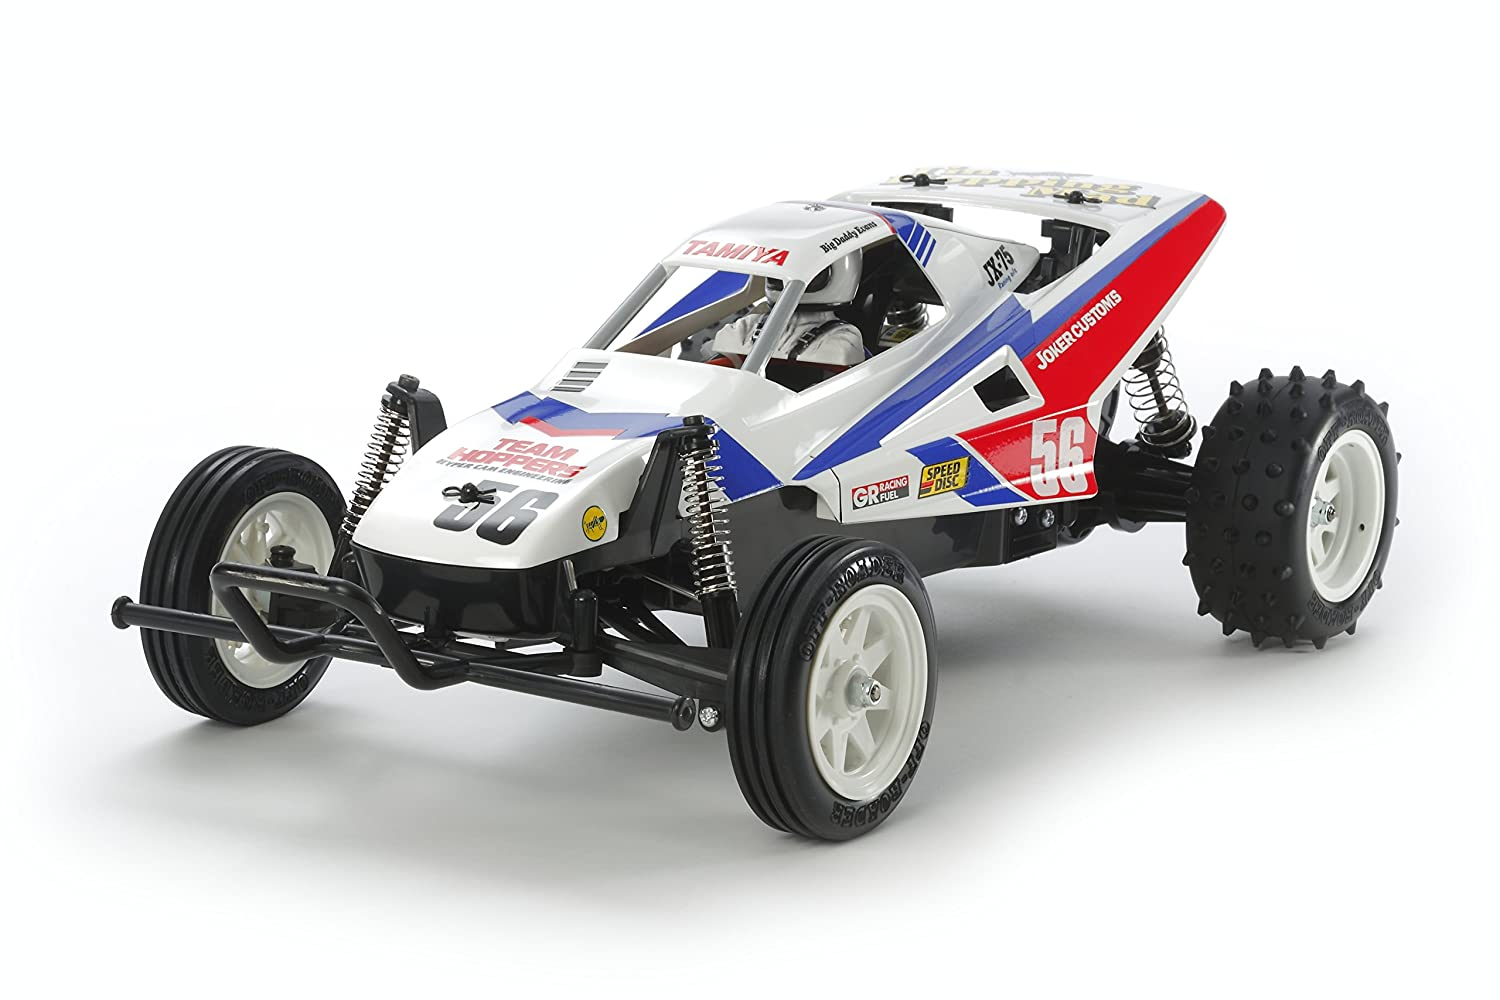 Tamiya 58643 Macchina telecomandata in Scala 1 10,/ RC The Grasshopper